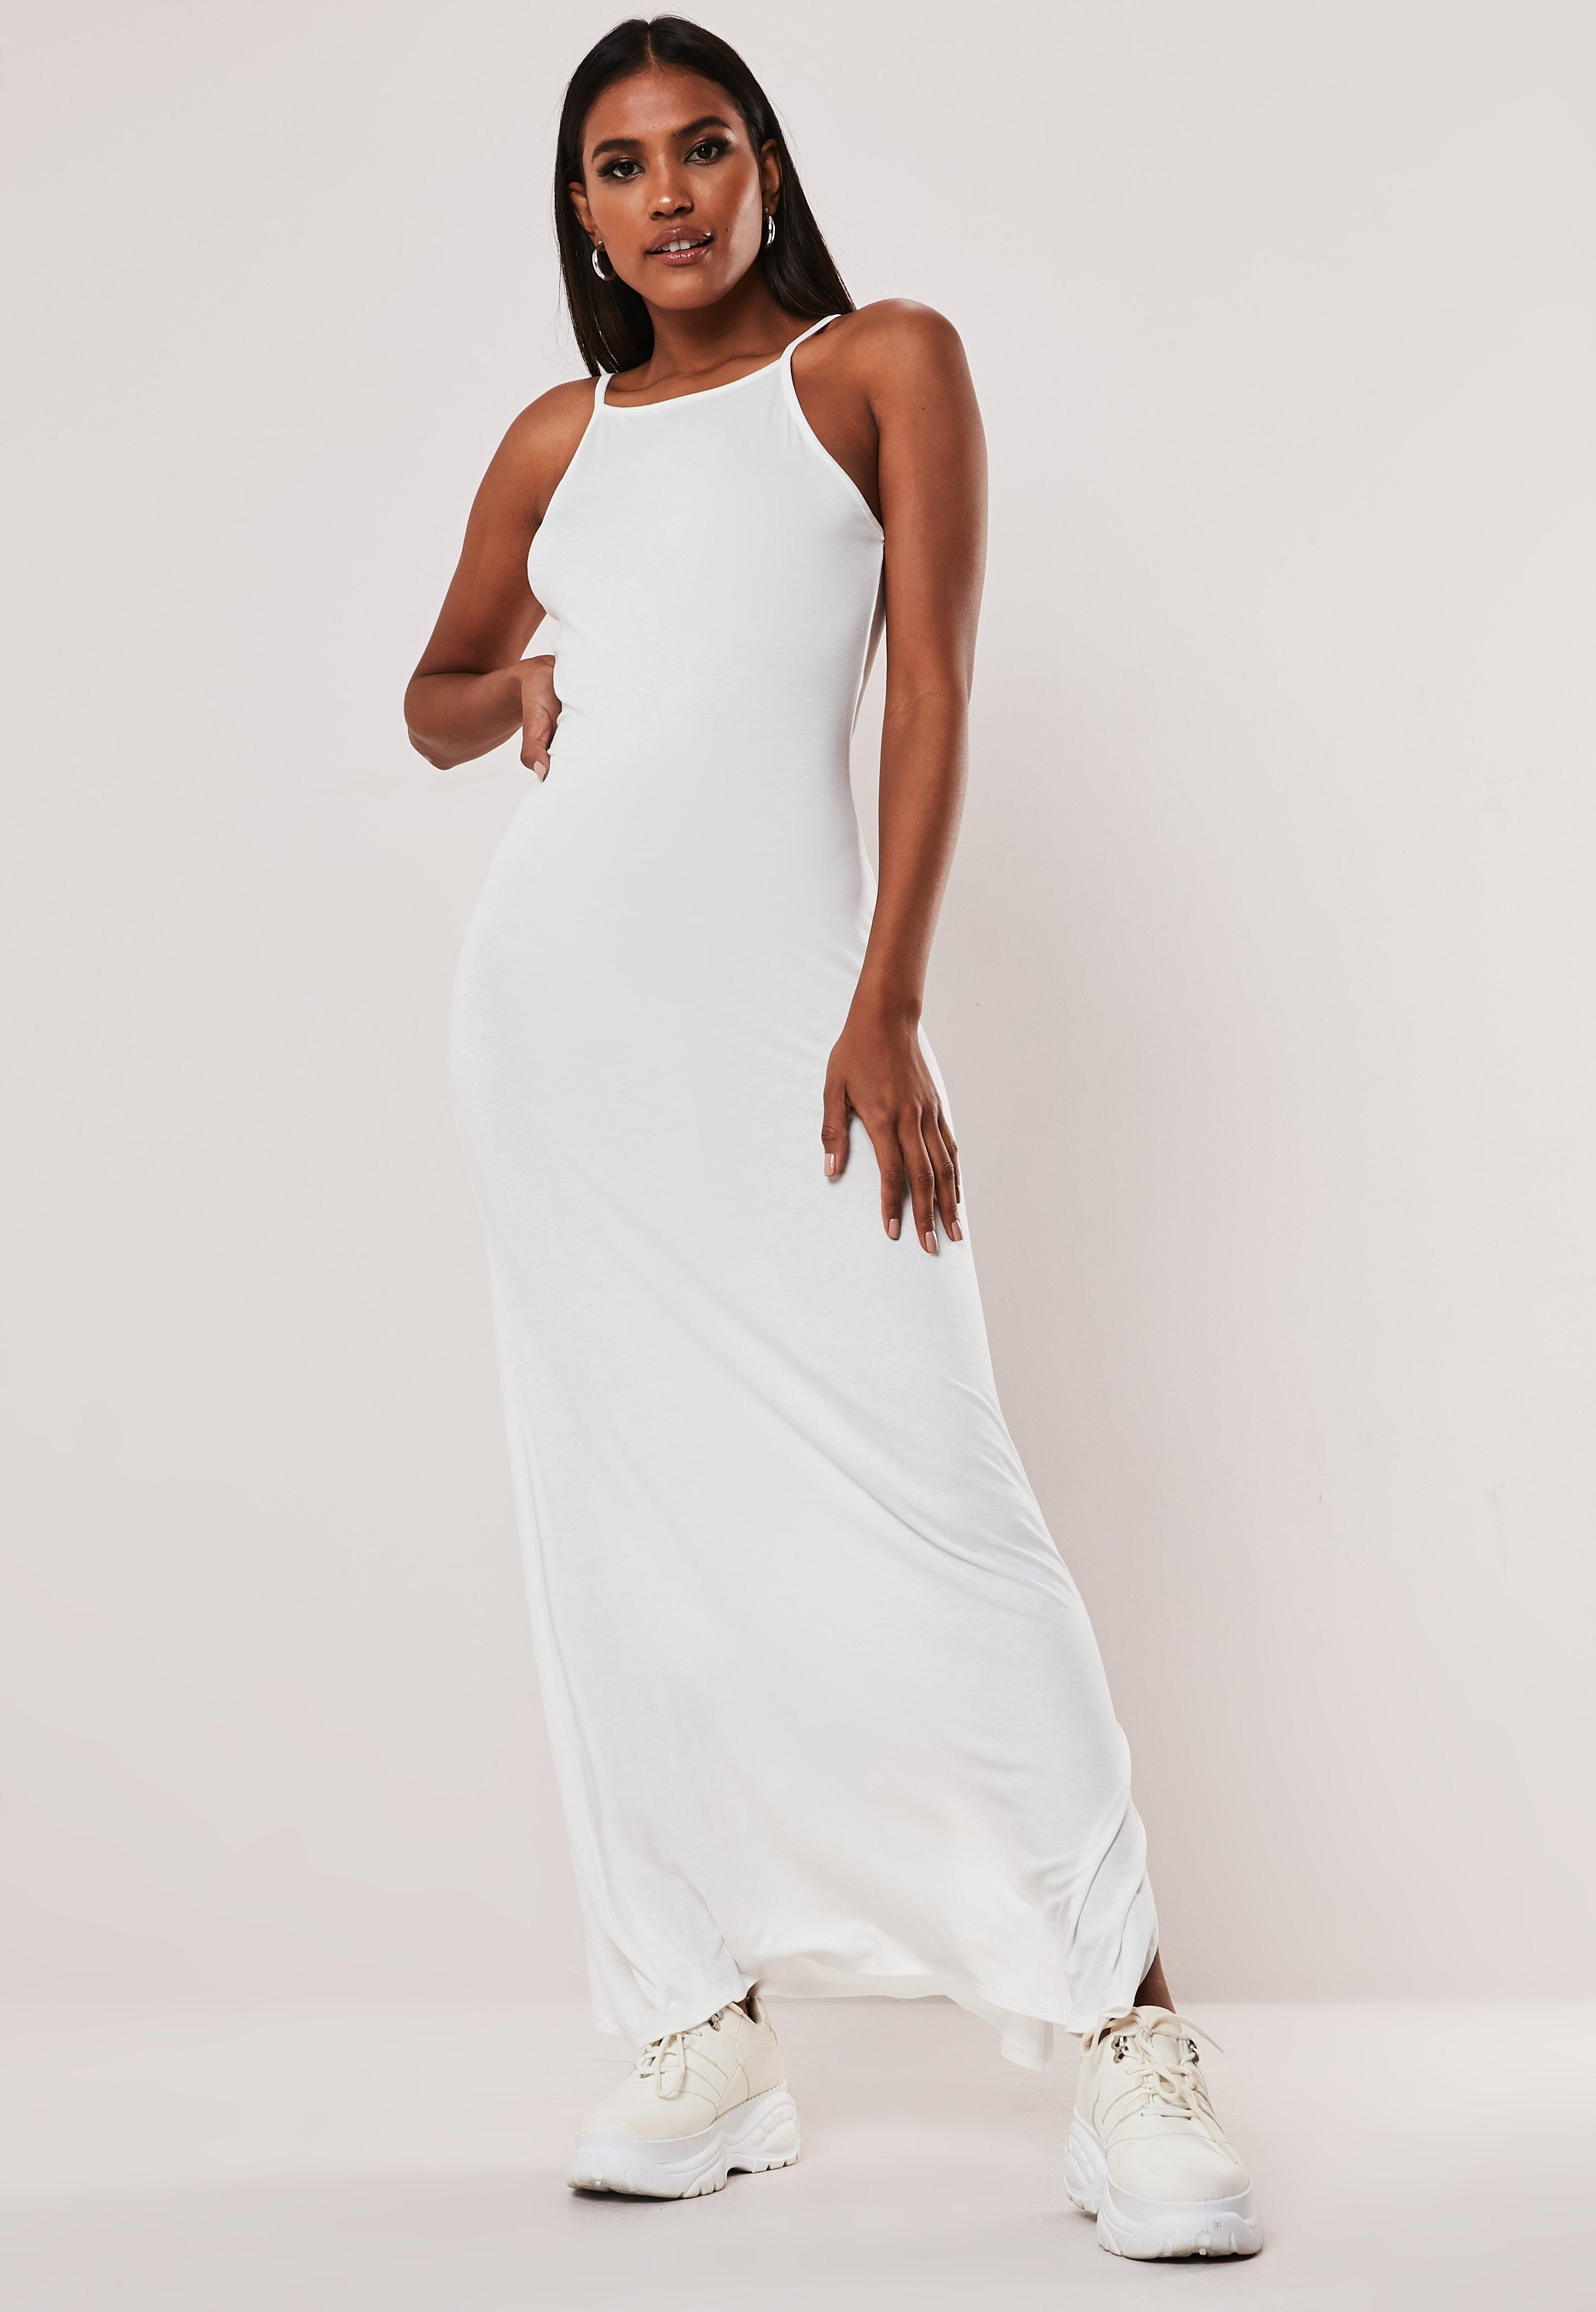 f7353e793b9 Petite Clothing | Womens Petite Clothes Online - Missguided